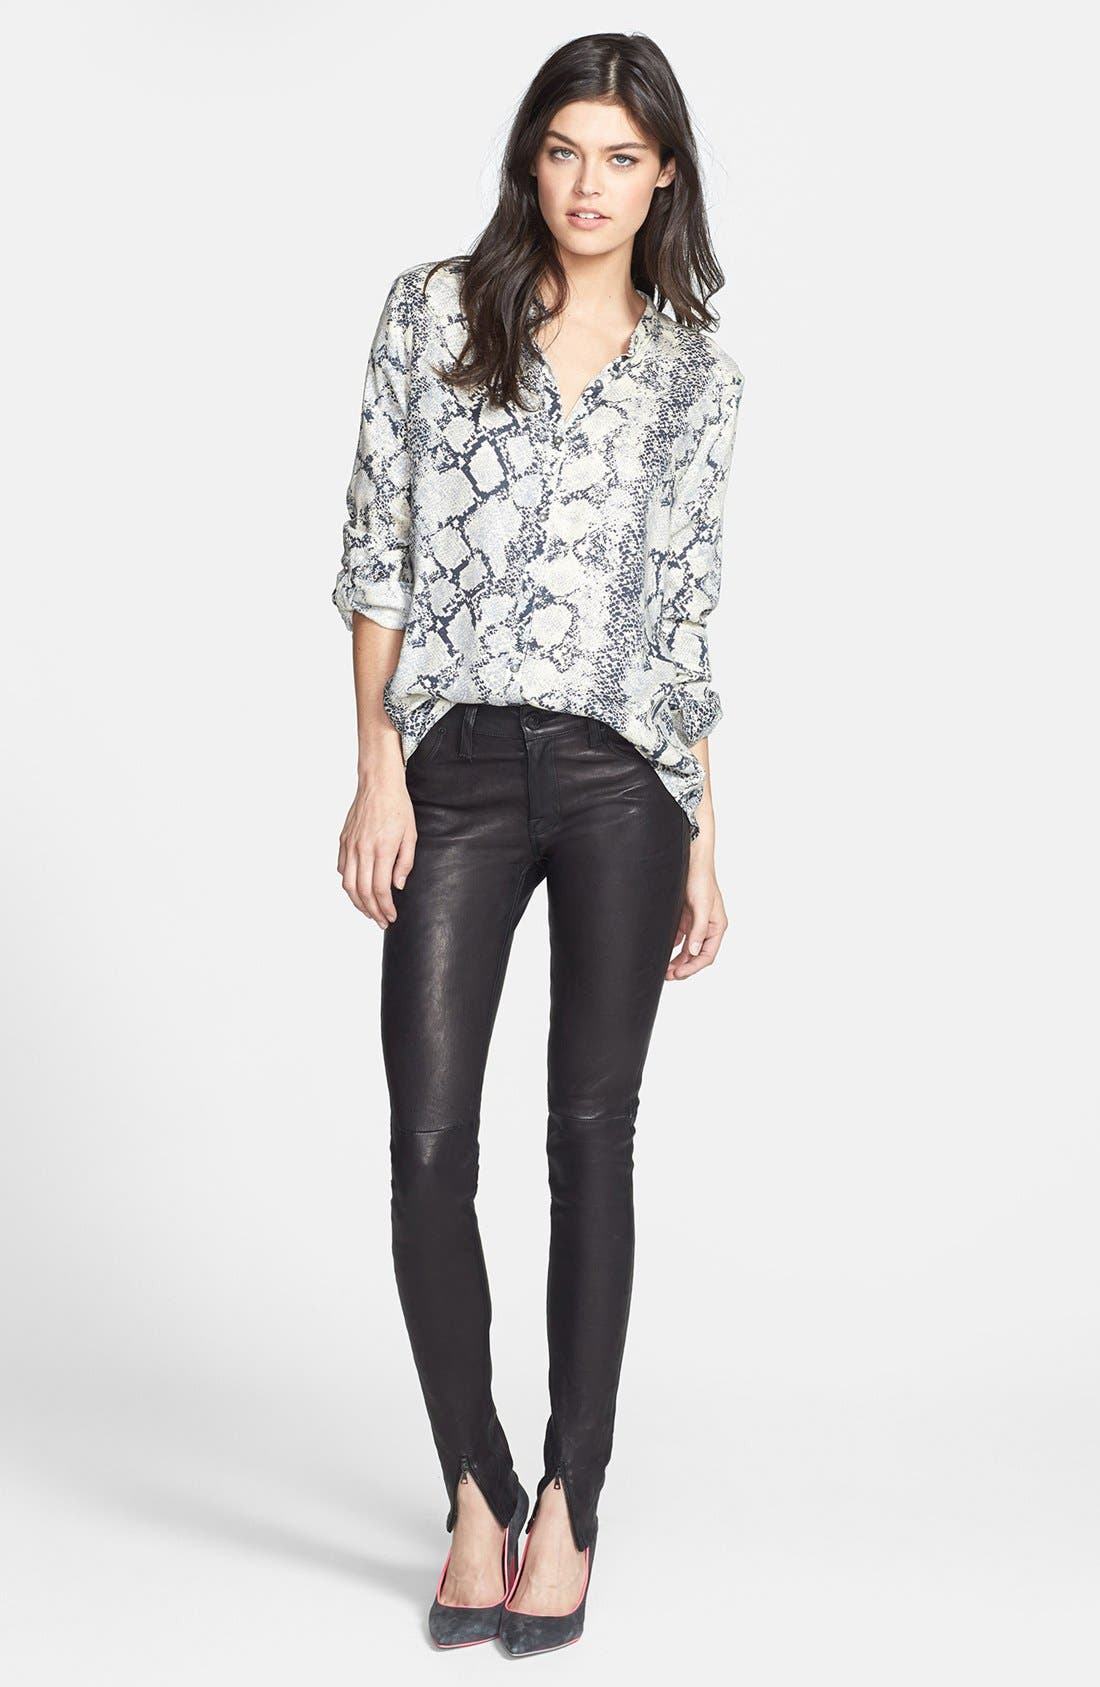 Alternate Image 1 Selected - Soft Joie Top & Hudson Jeans Pants